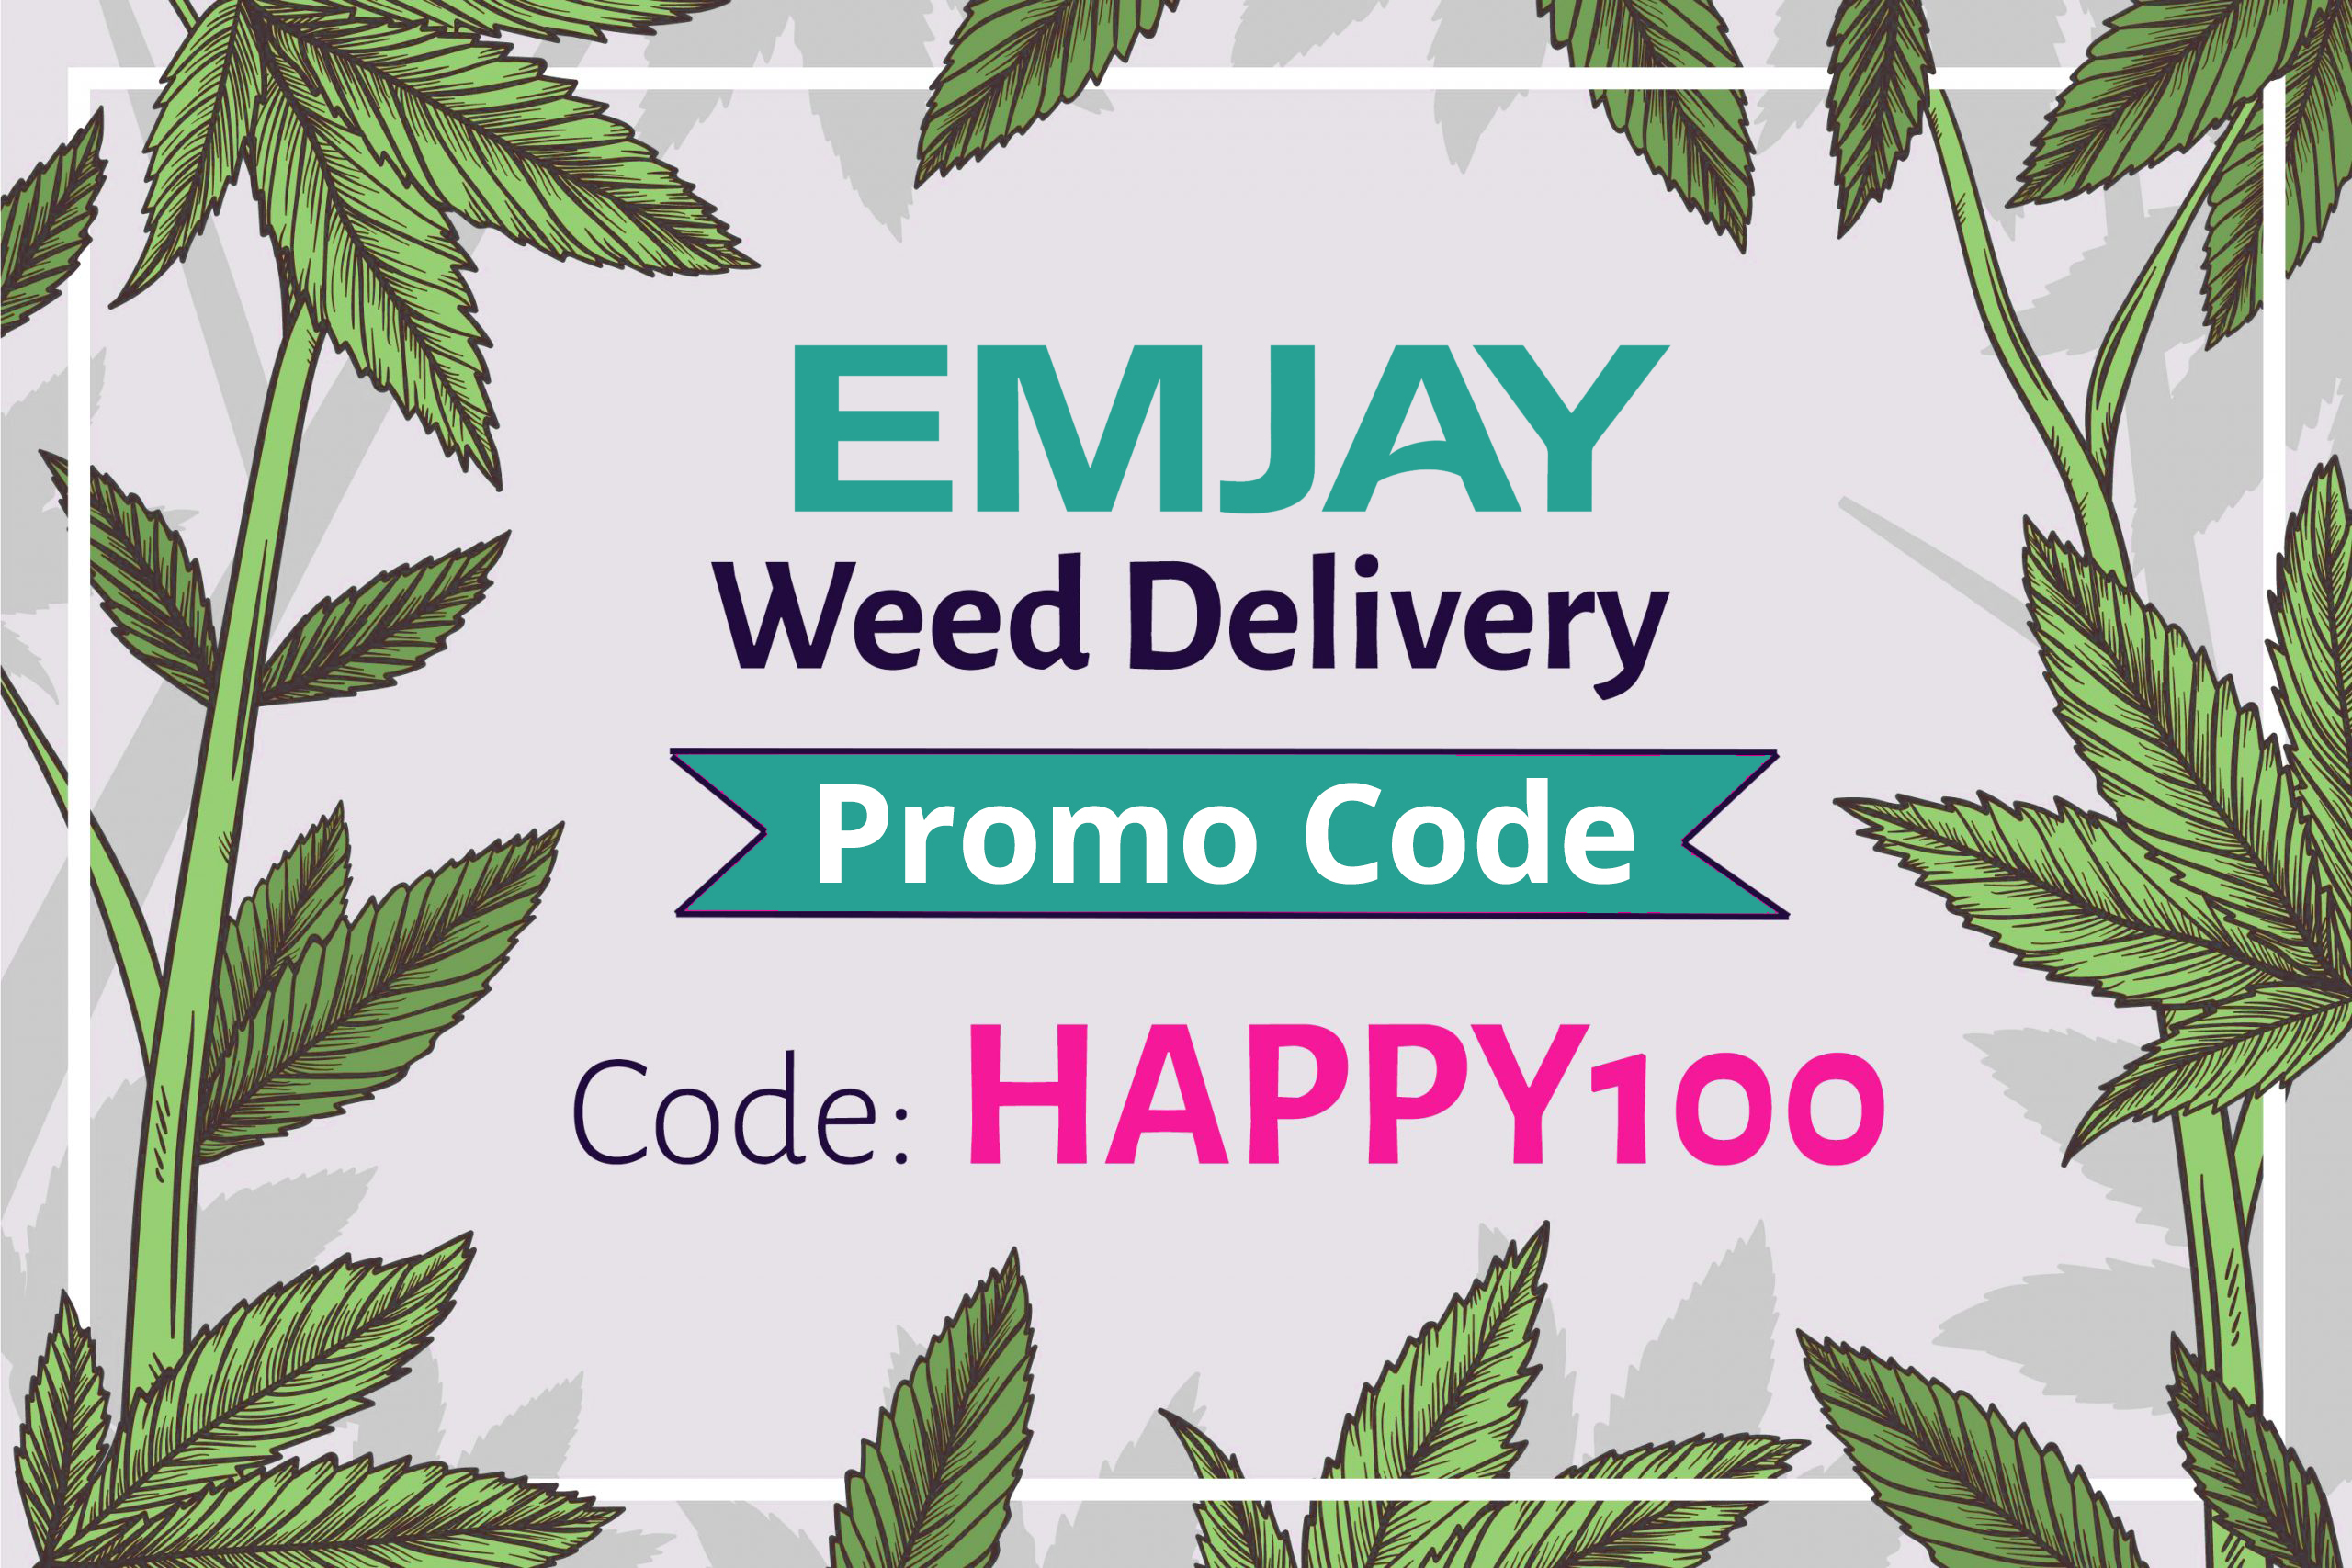 Emjay Promo Code | Get $10 off with code: HAPPY100